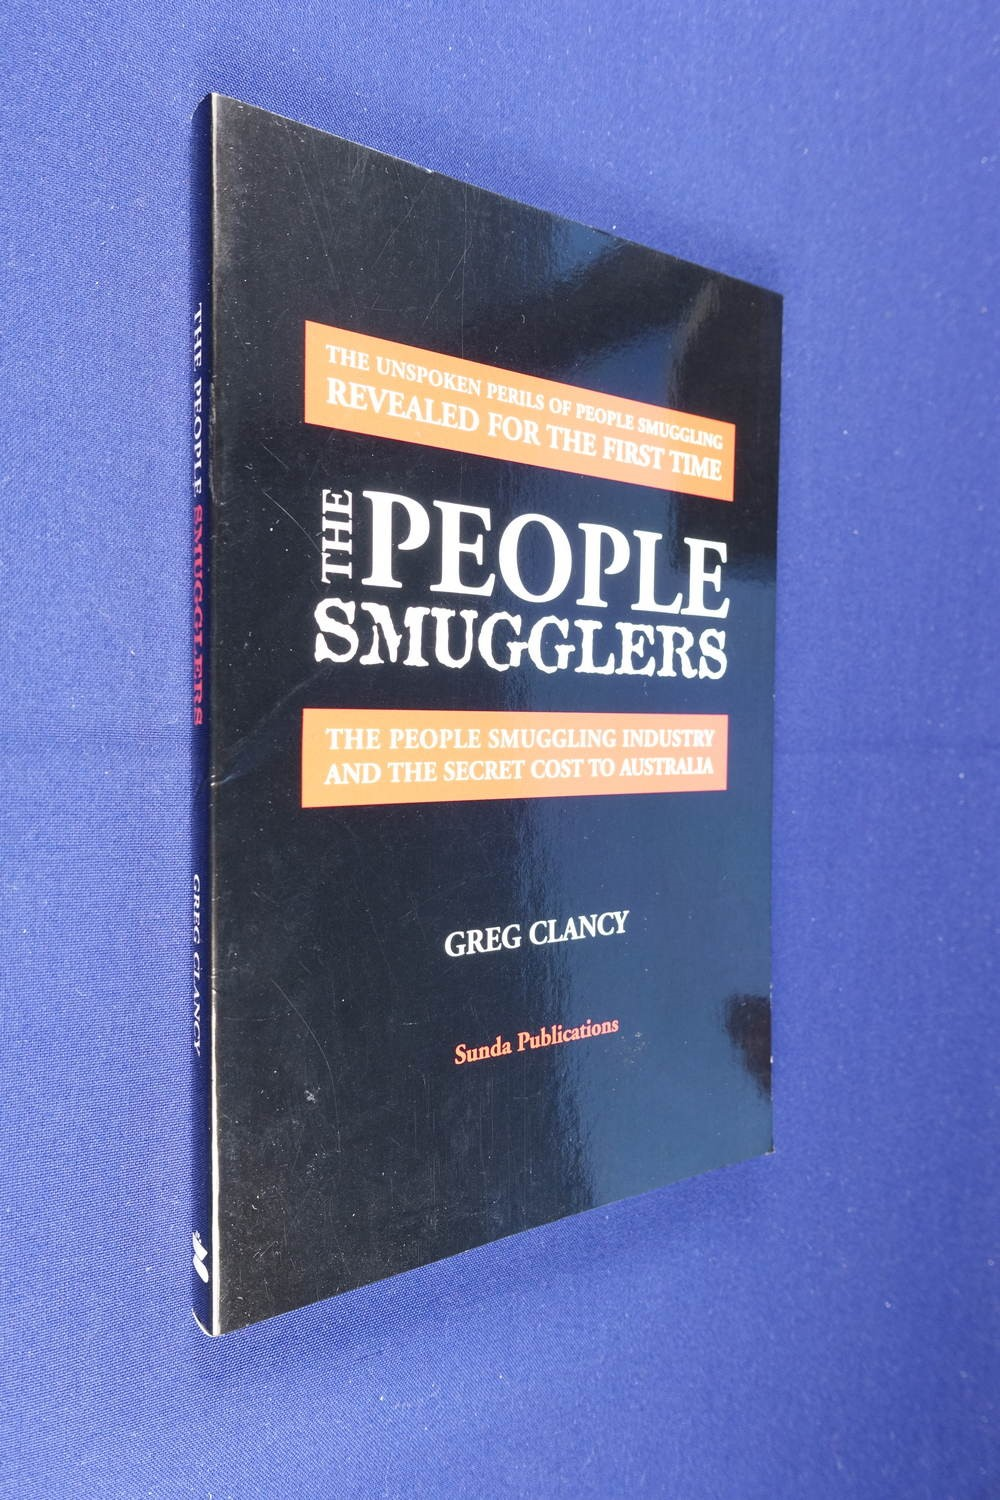 THE-PEOPLE-SMUGGLERS-Greg-Clancy-REFUGEE-ASYLUM-SEEKERS-australian-immigration